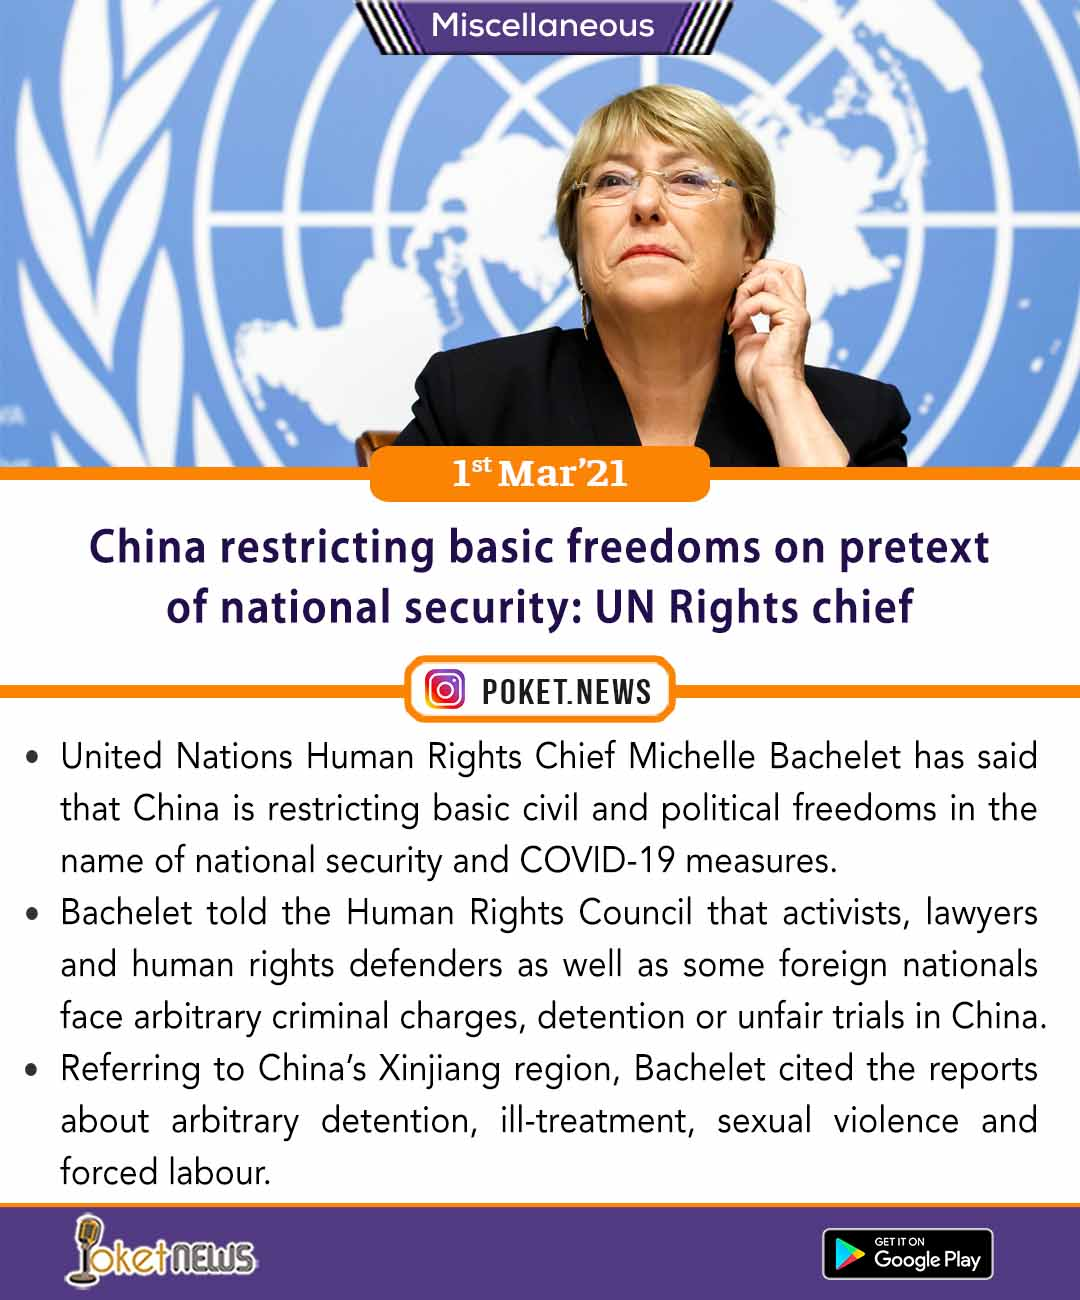 China restricting basic freedoms on pretext of national security: UN Rights chief